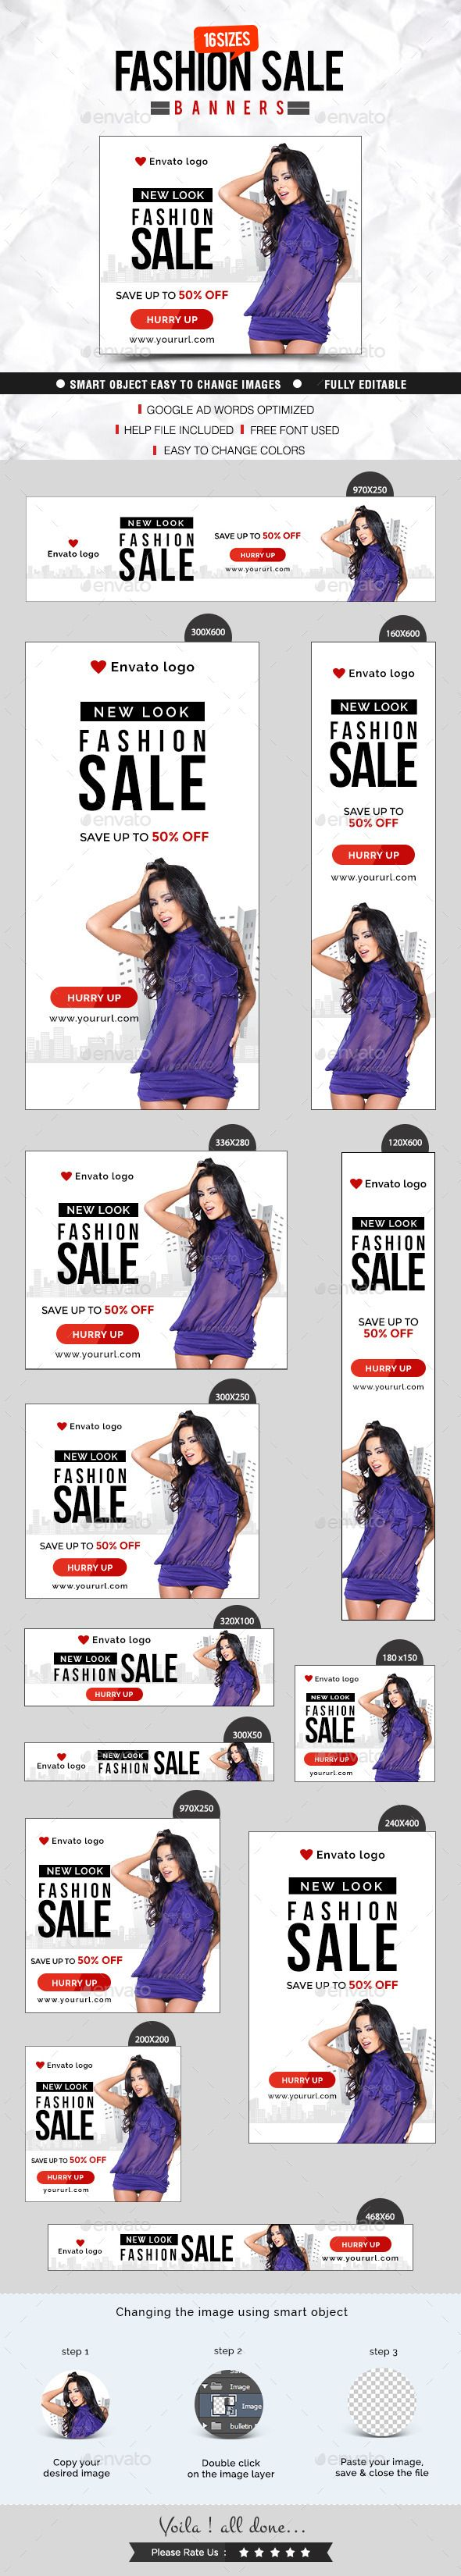 Fashion & Clothing Banner Design Template PSD   Buy and Download: http://graphicriver.net/item/fashion-clothing-banner-design/8923858?WT.ac=category_thumb&WT.z_author=doto&ref=ksioks